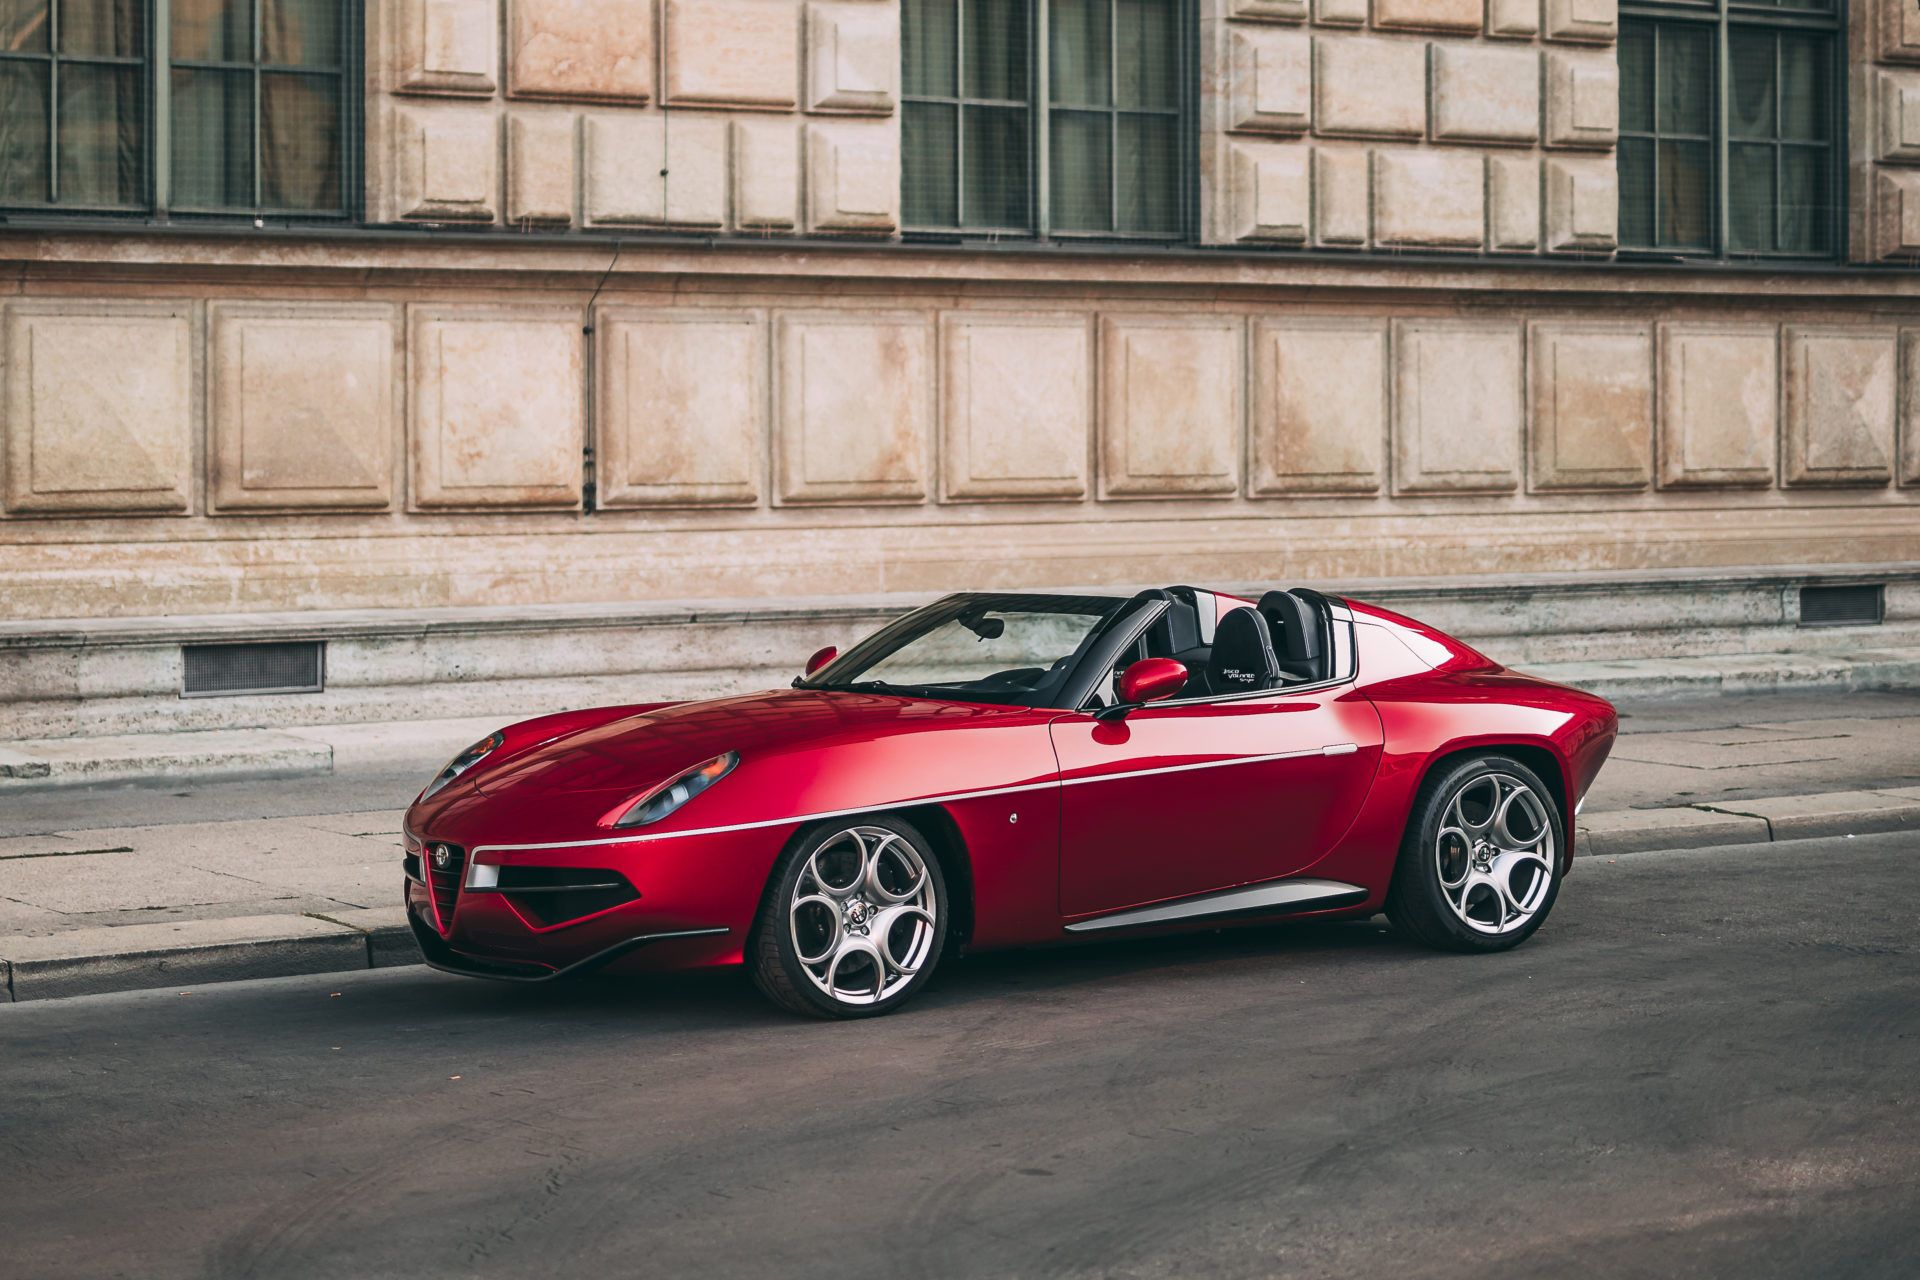 Alfa-Romeo-Disco-Volante-Spyder-for-sale-4